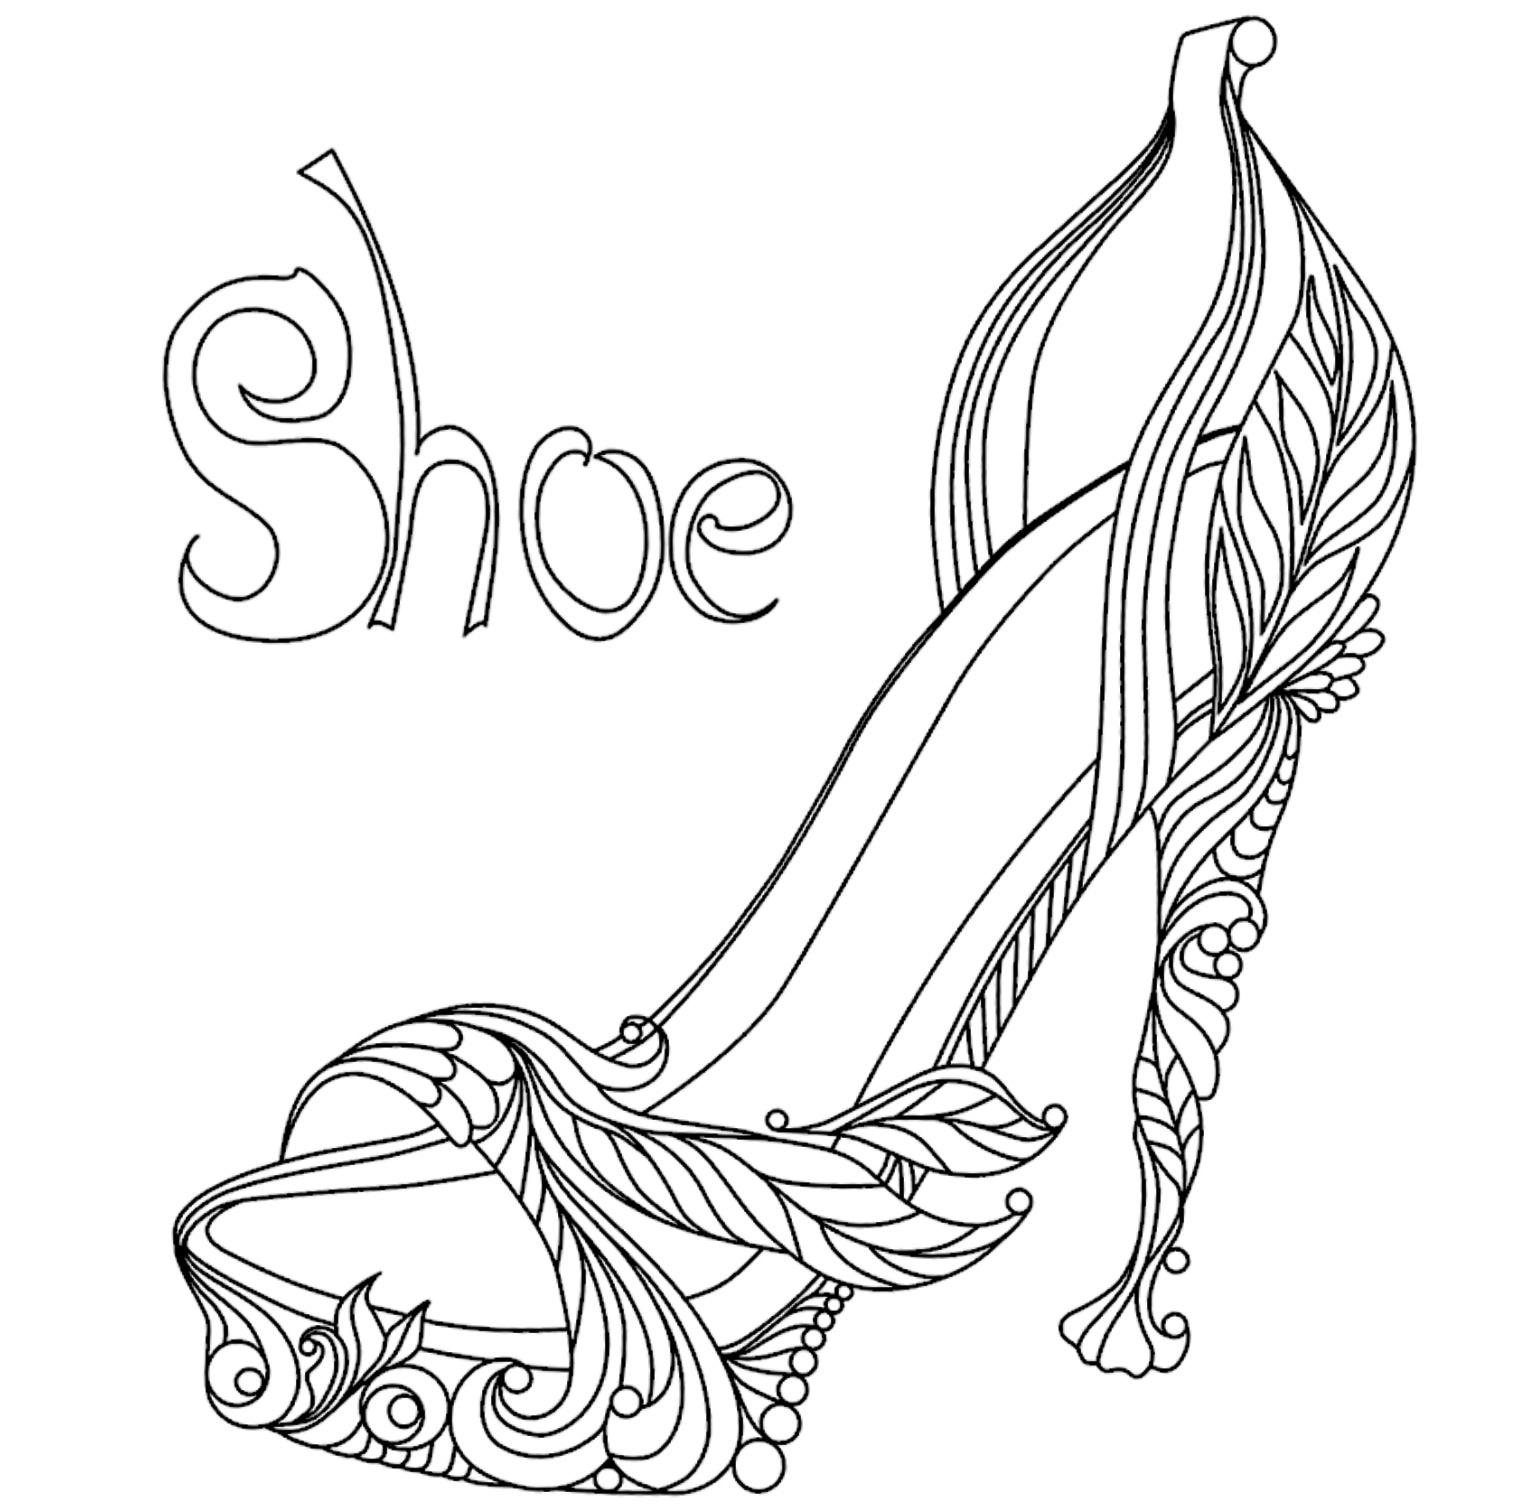 shoes for coloring basketball shoe coloring pages download and print for free for shoes coloring